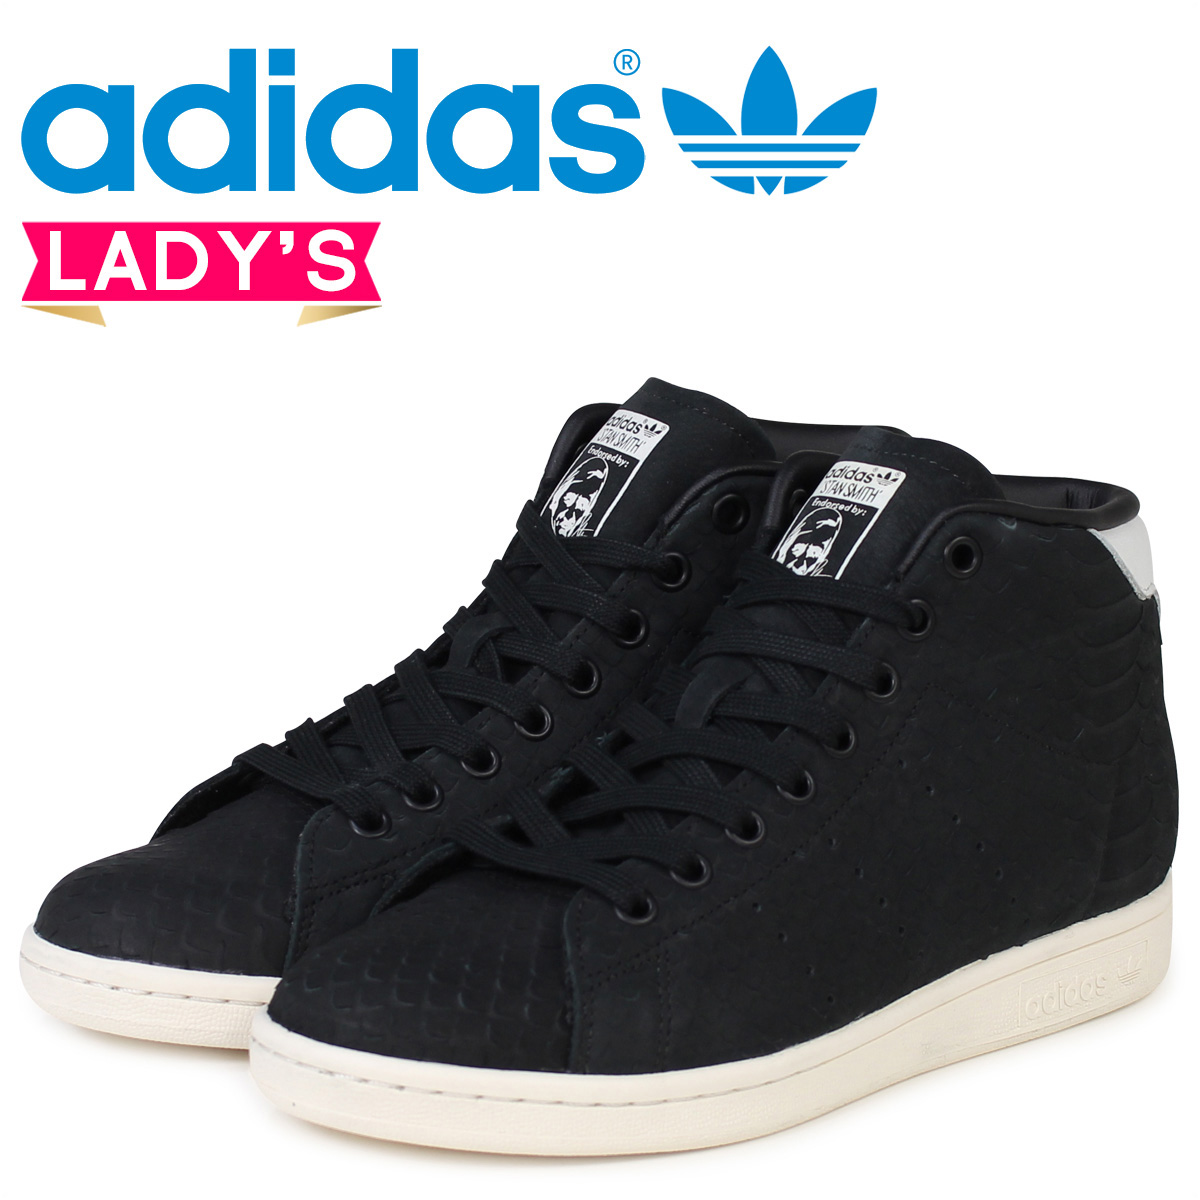 adidas stan smith mid damen